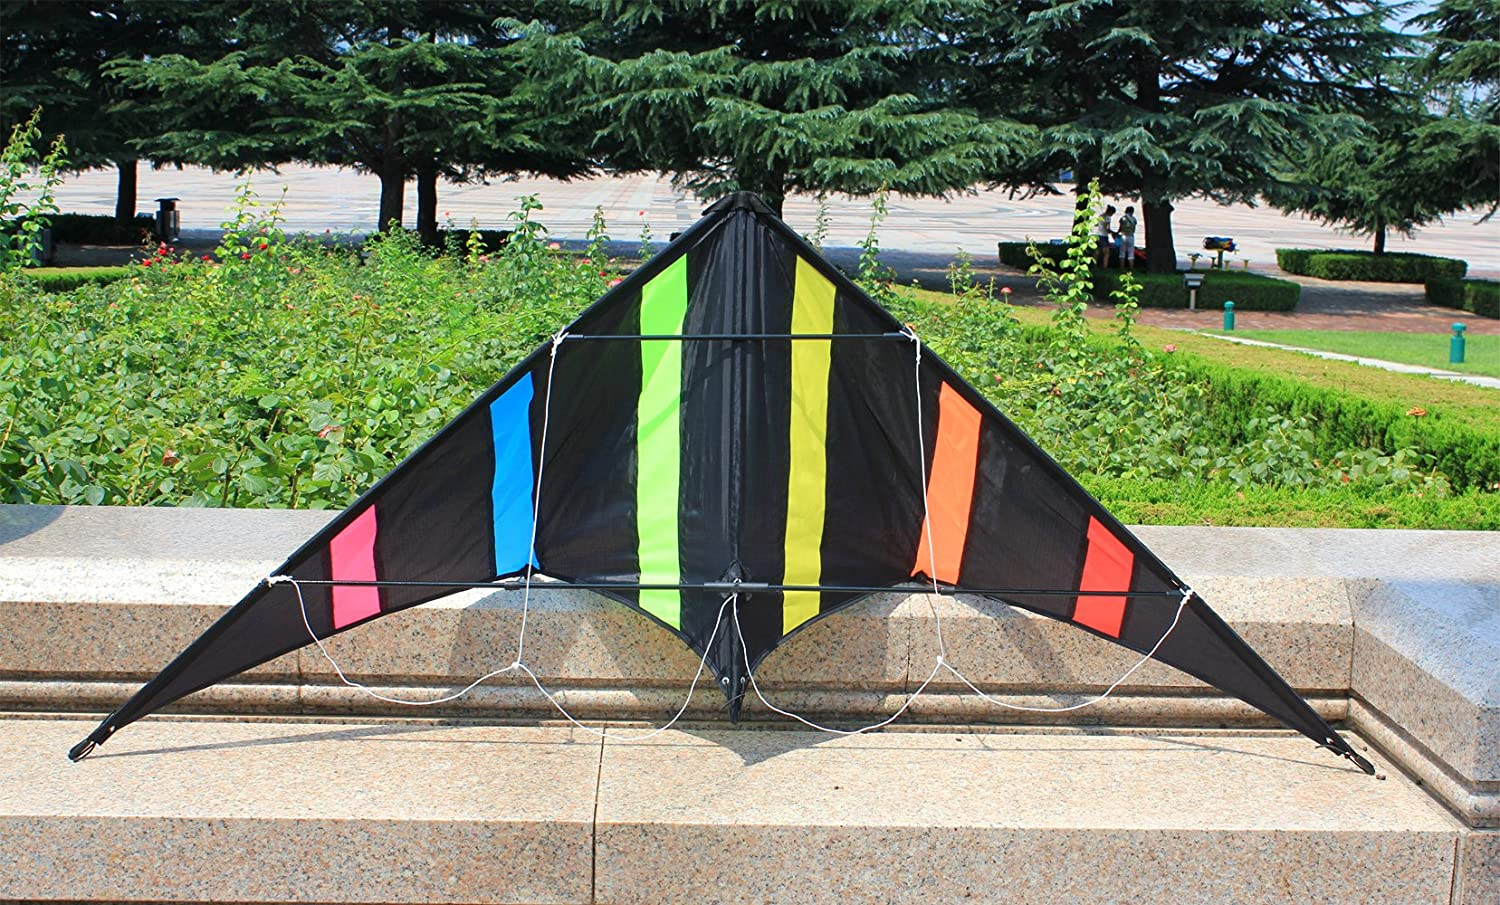 Details about  /NEW 3D Stereo Baskets triangle kite stunt single line outdoor fun sports novetly